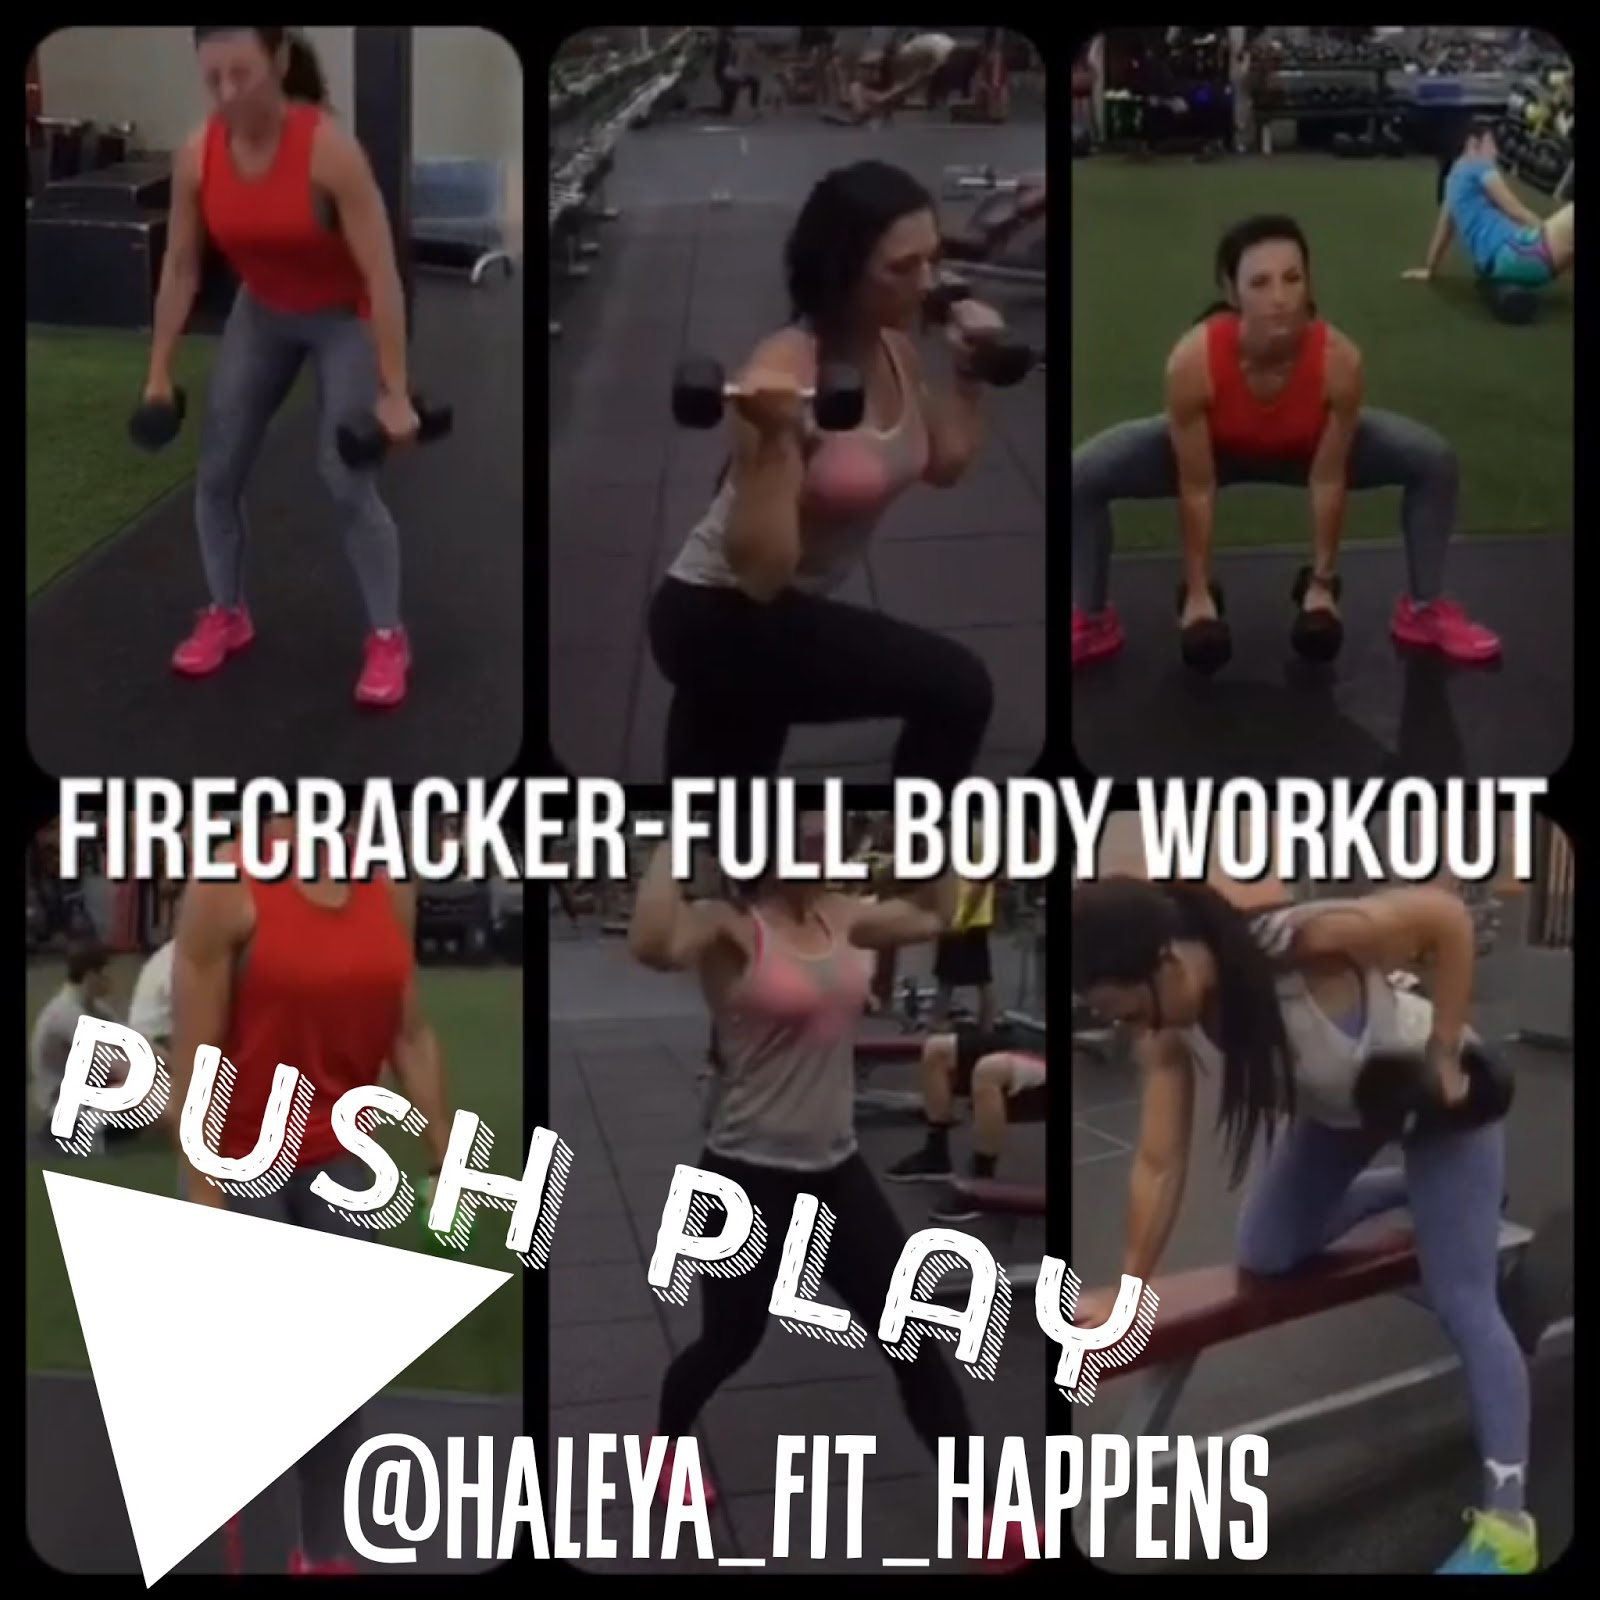 Fit Happens The Firecracker Full Body Workout Workouts And Tagged Circuit Other Exercises In Have Been Posted Before Under Hashtag Fithappensworkouts Im Happy To Tag You